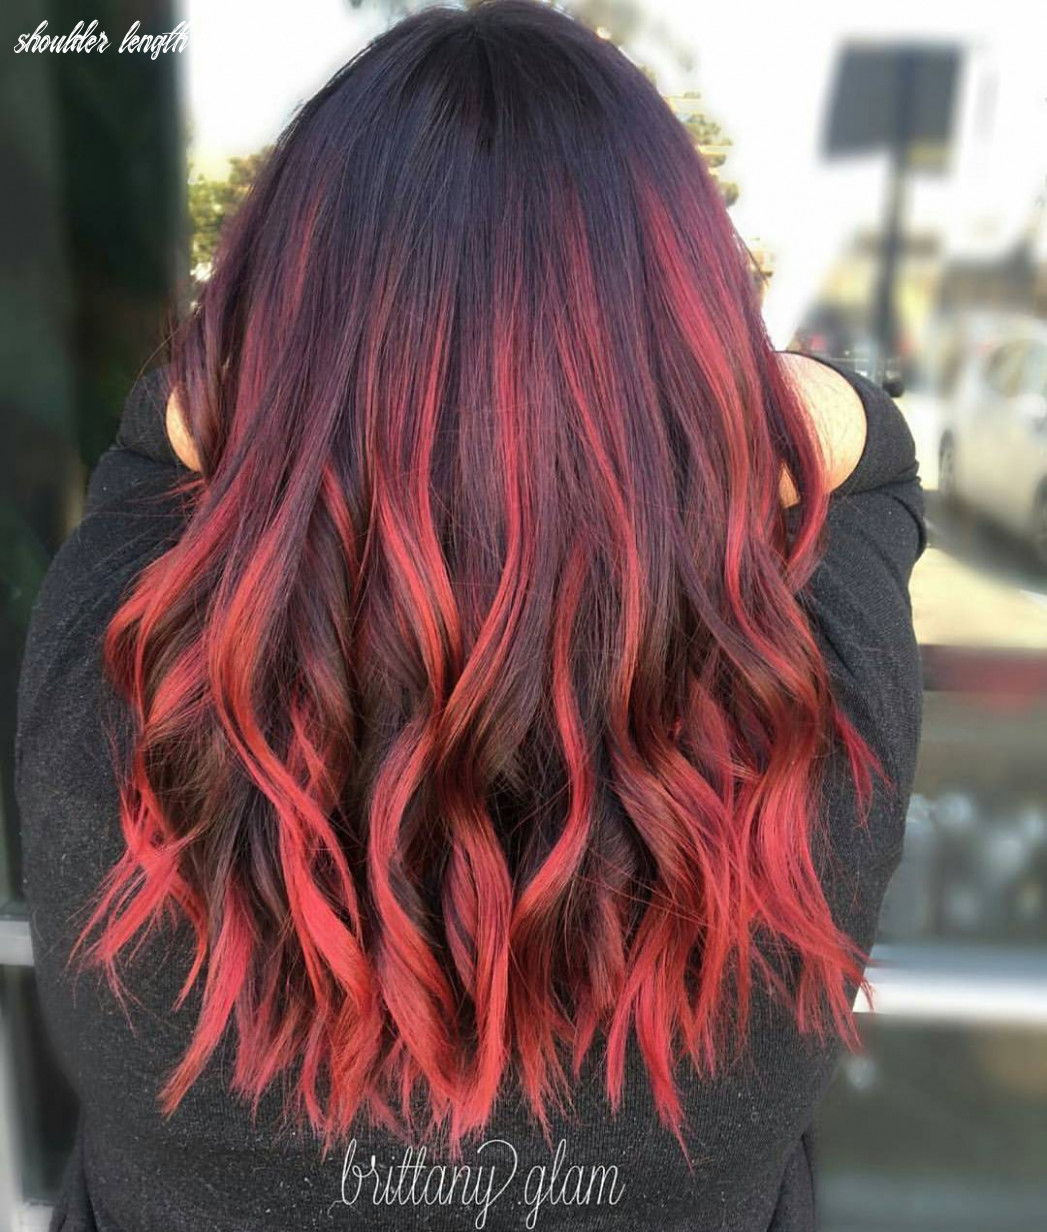 11 medium long hairstyles for thick hair in super beautiful colors